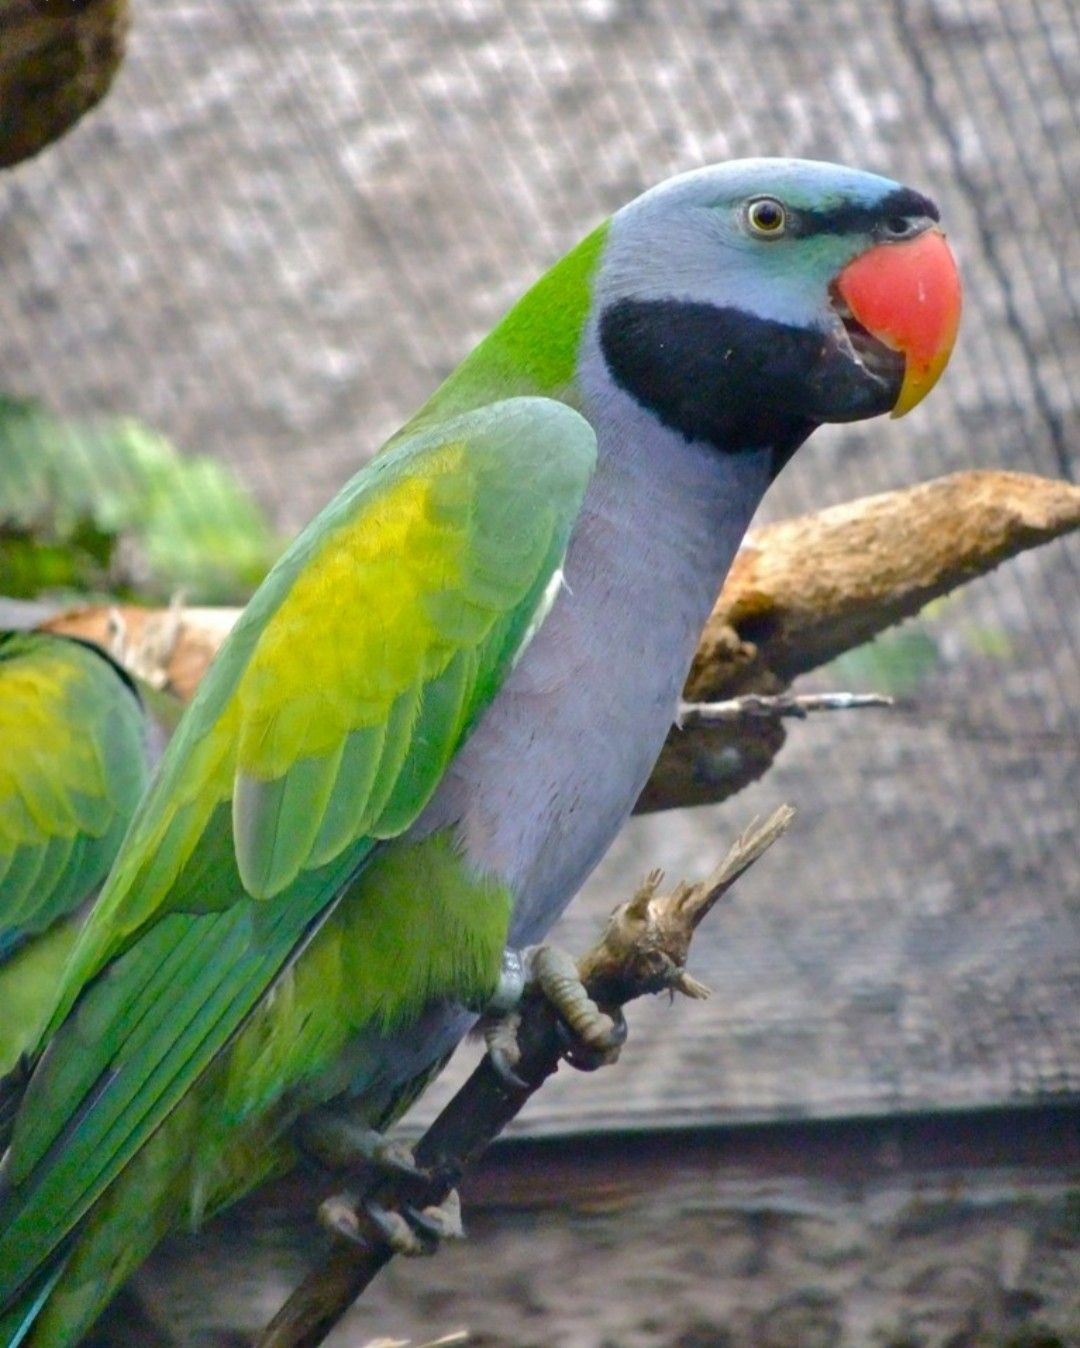 The Lord Derby's parakeet (Psittacula derbiana), also